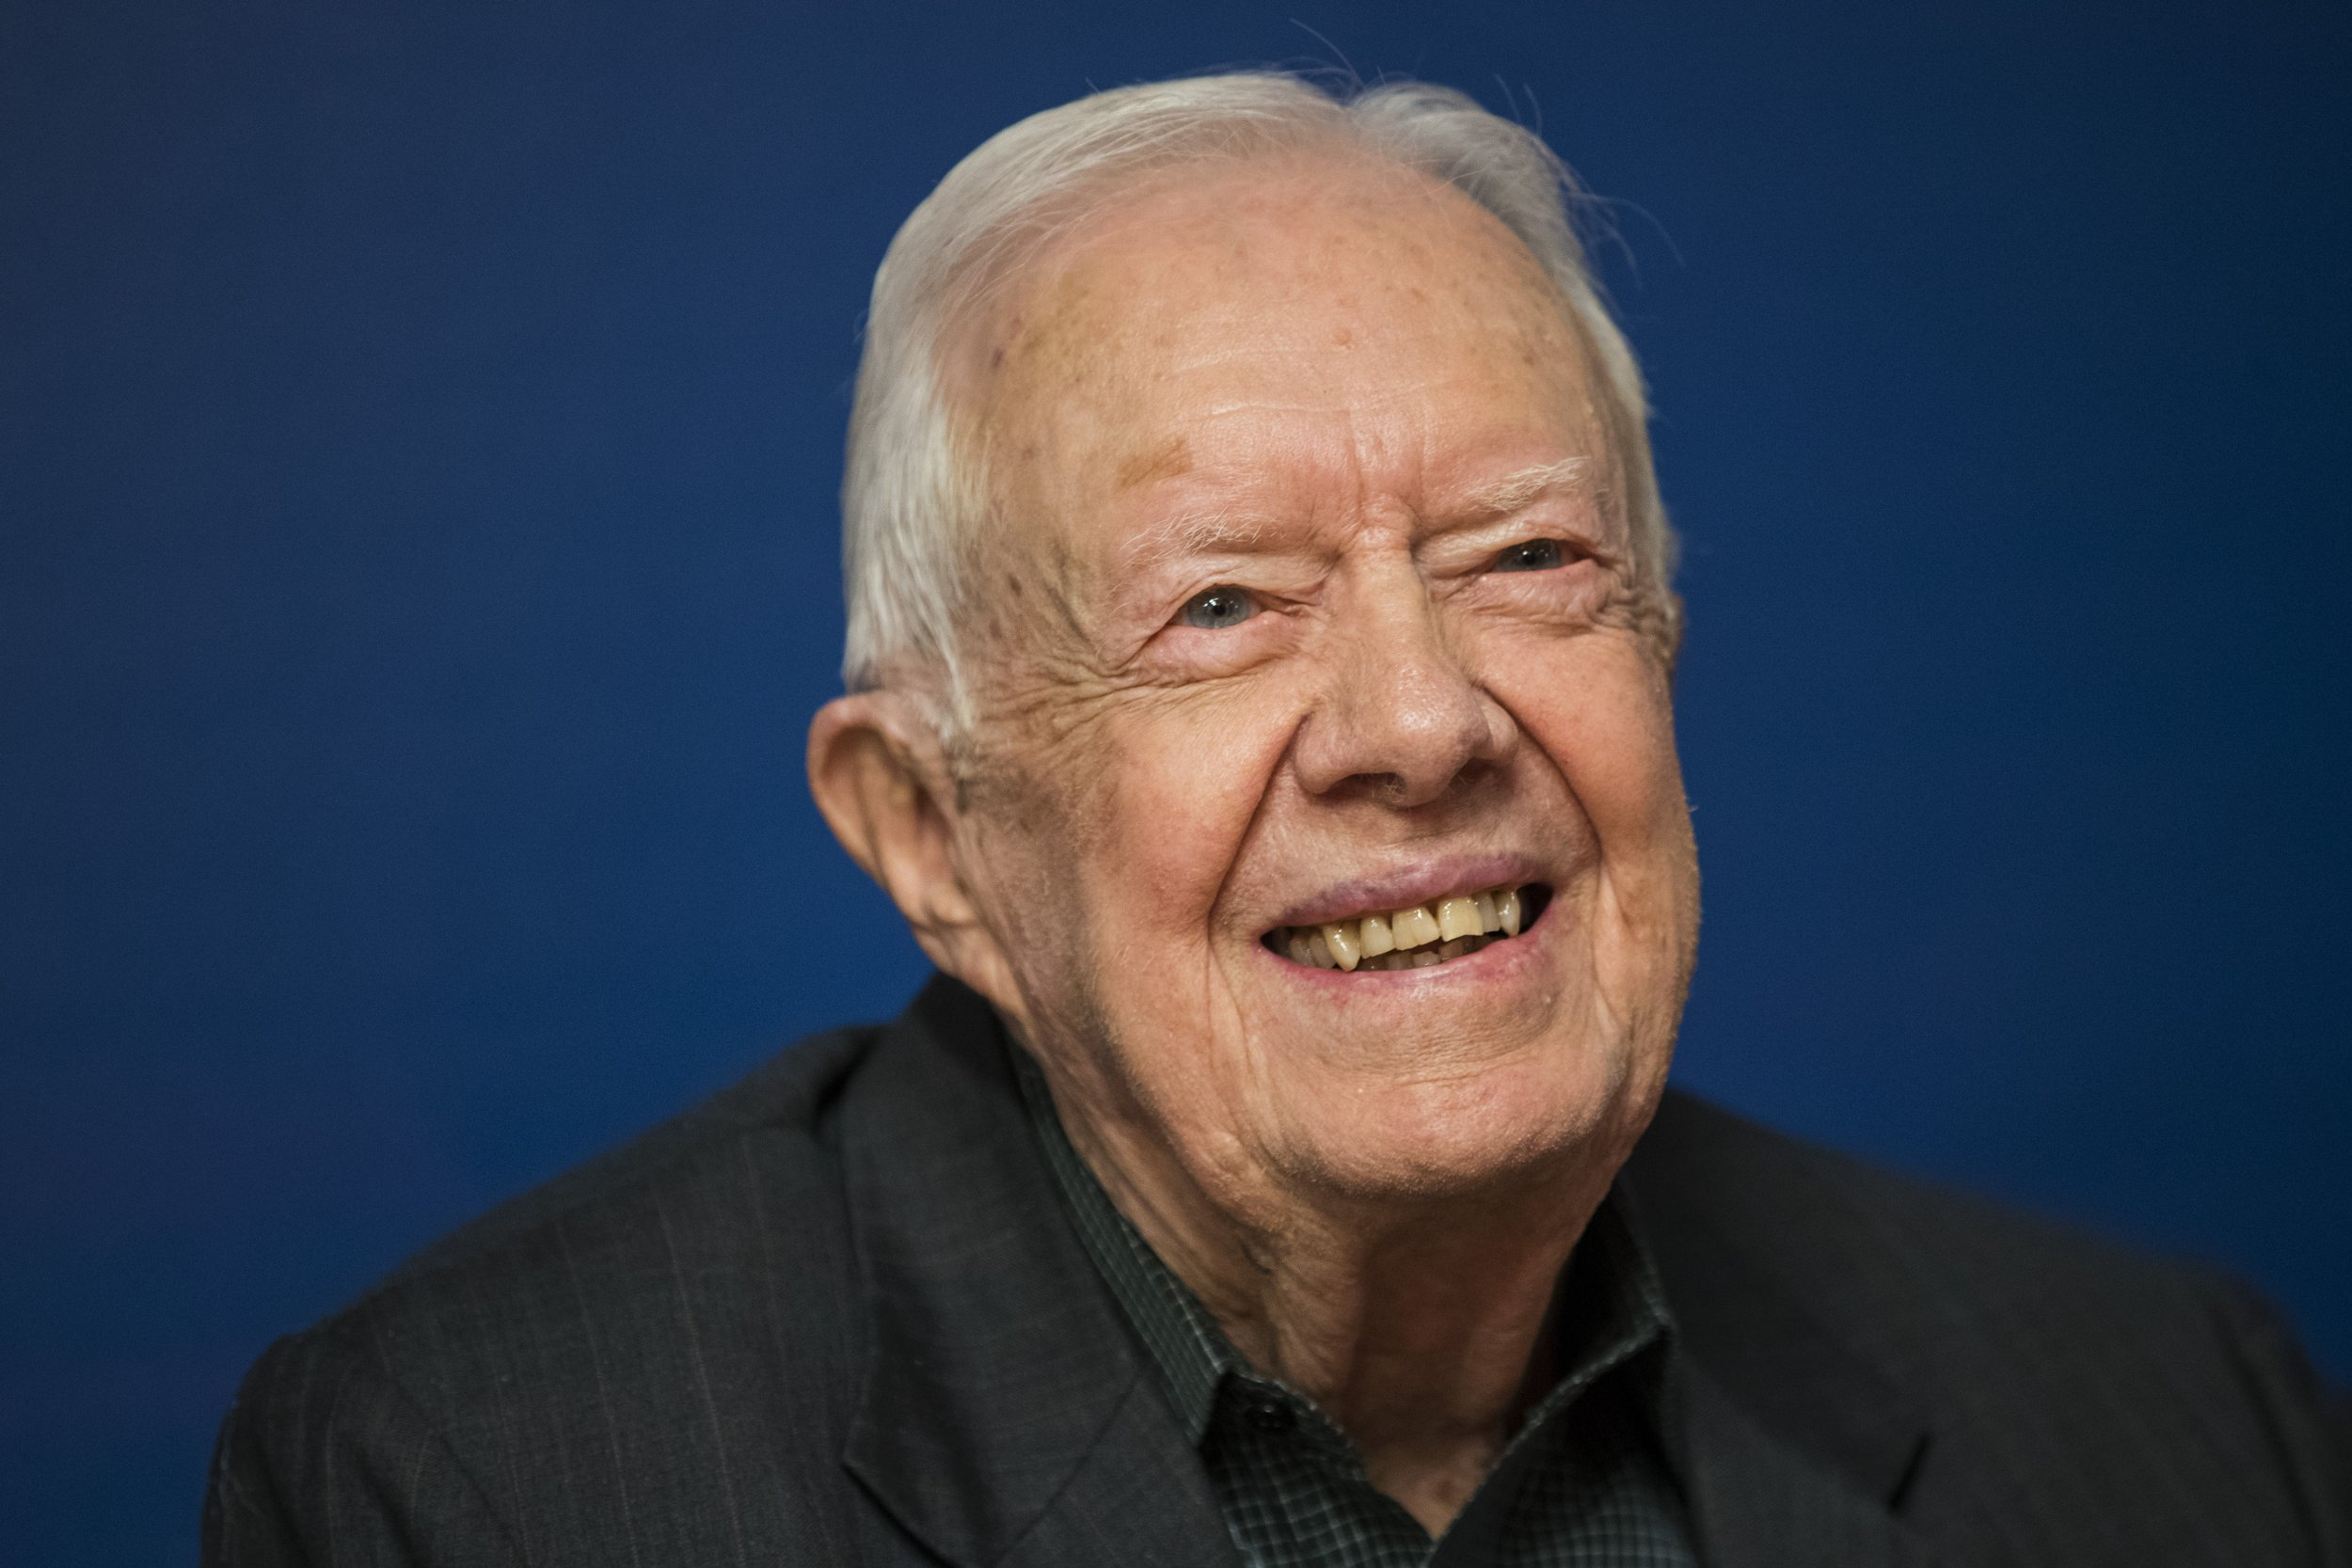 Jimmy Carter Says Treatment Of Women And Girls Not Wealth